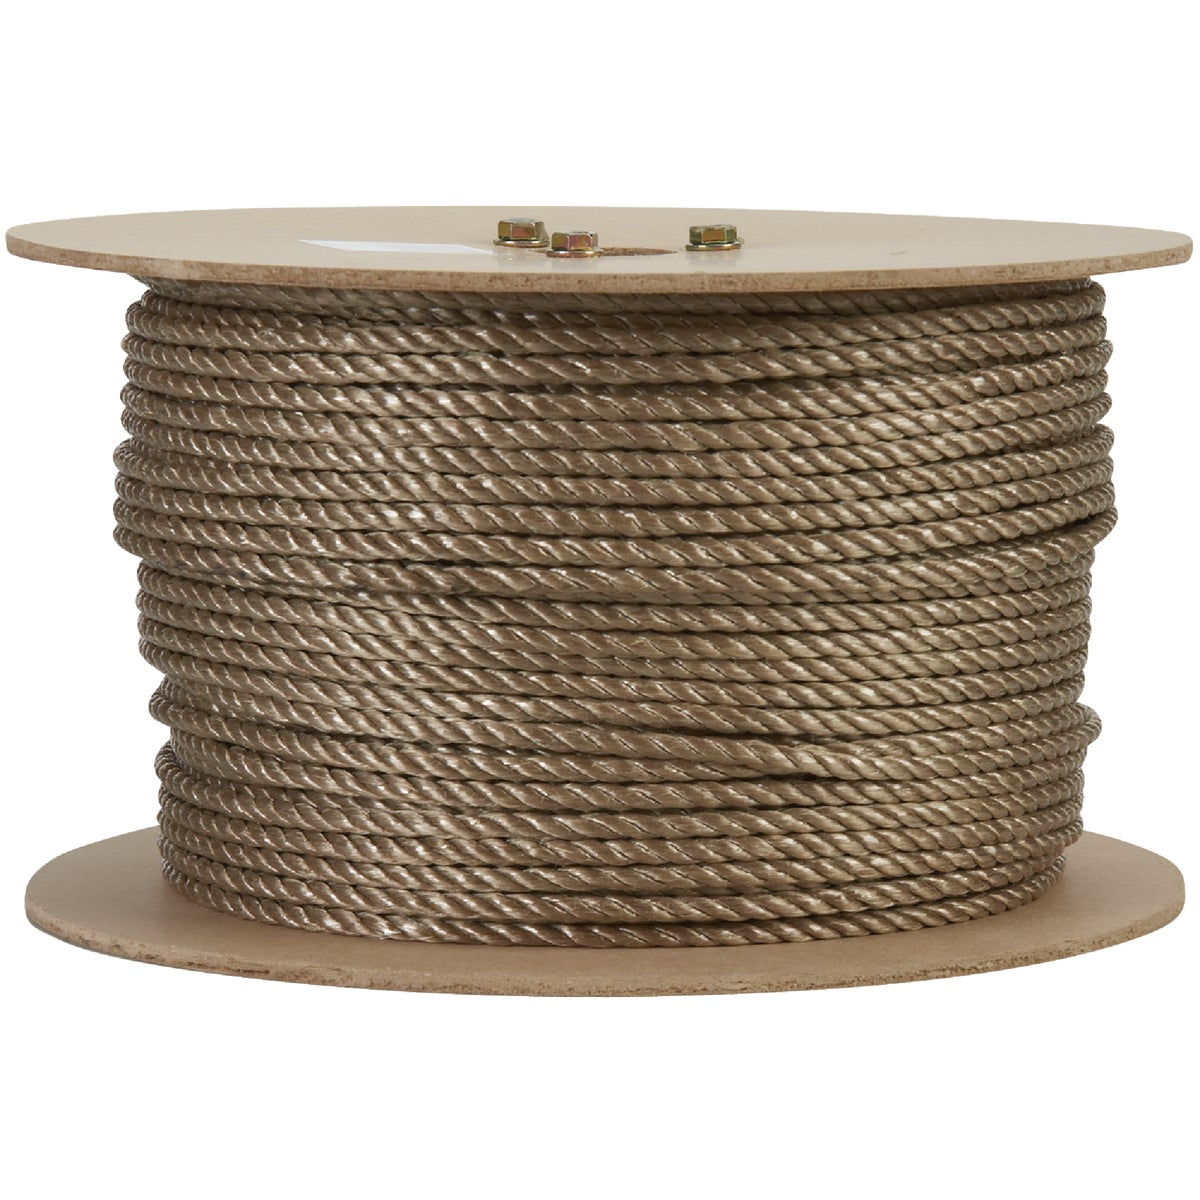 "1/4""X600' UNMANILLA ROPE - 707414 by Do it Best"